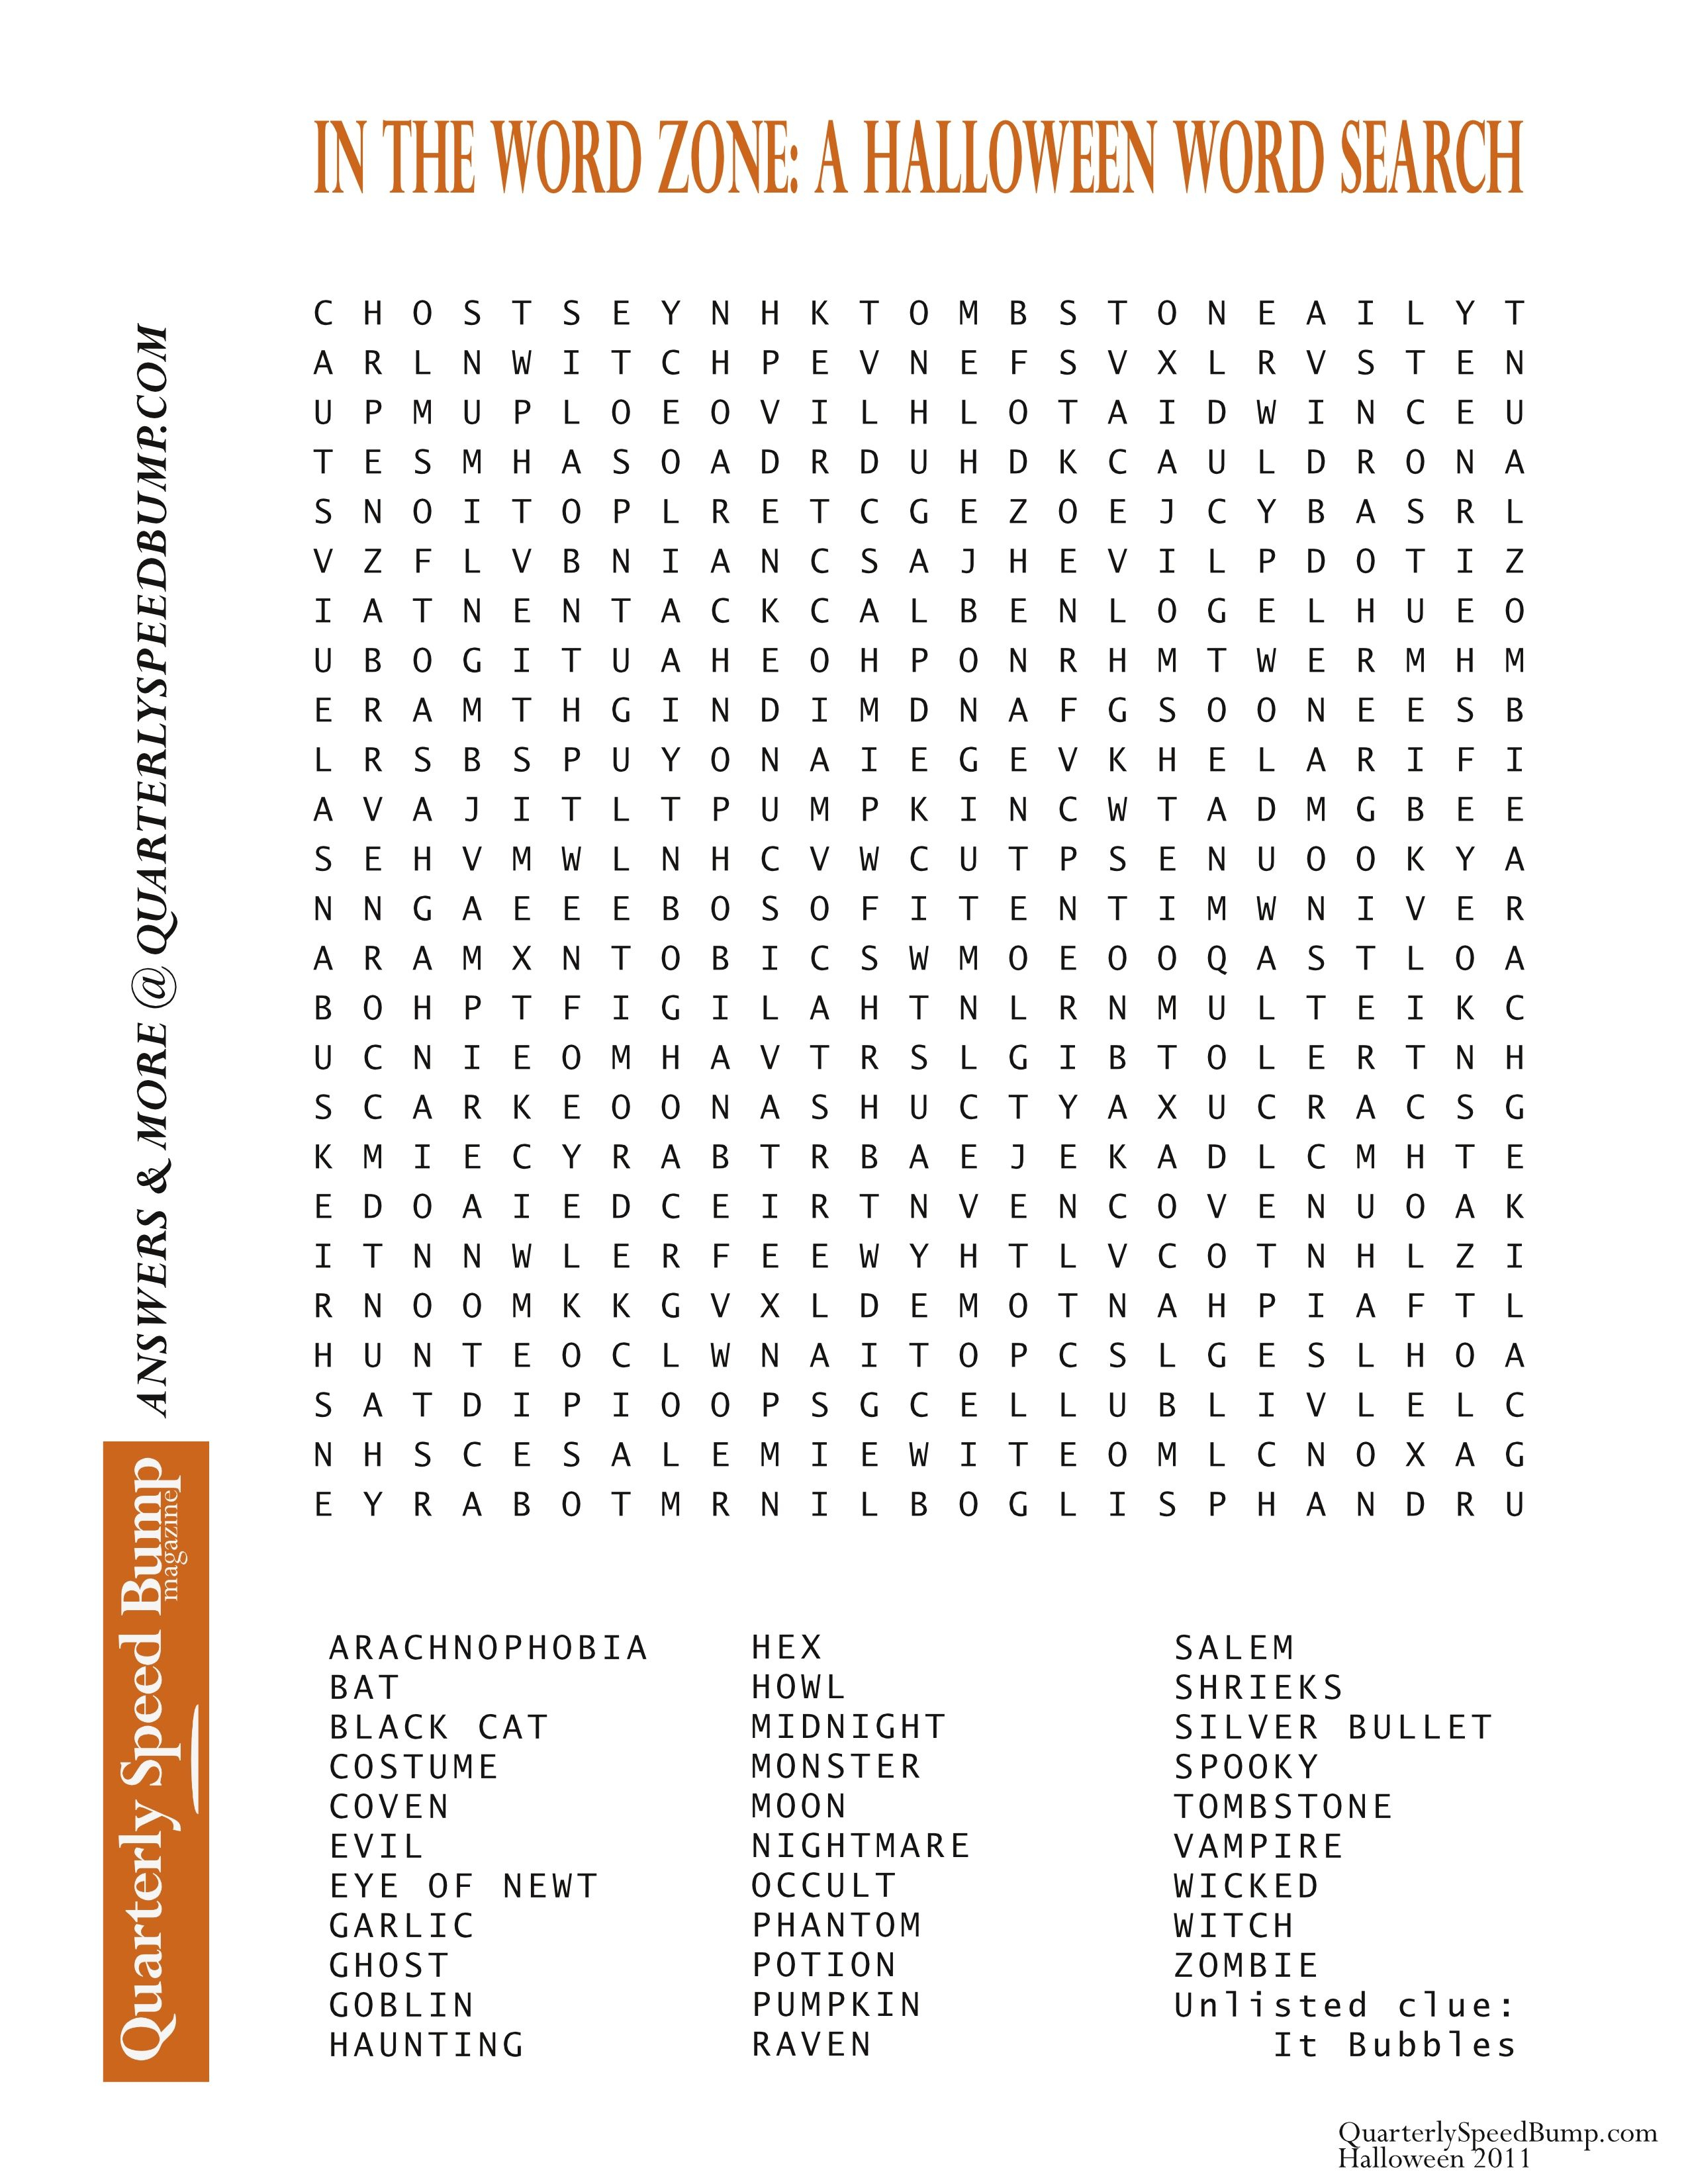 Free Printable Halloween Word Search Puzzles | Halloween Puzzle For - Halloween Crossword Puzzles For Adults Printable